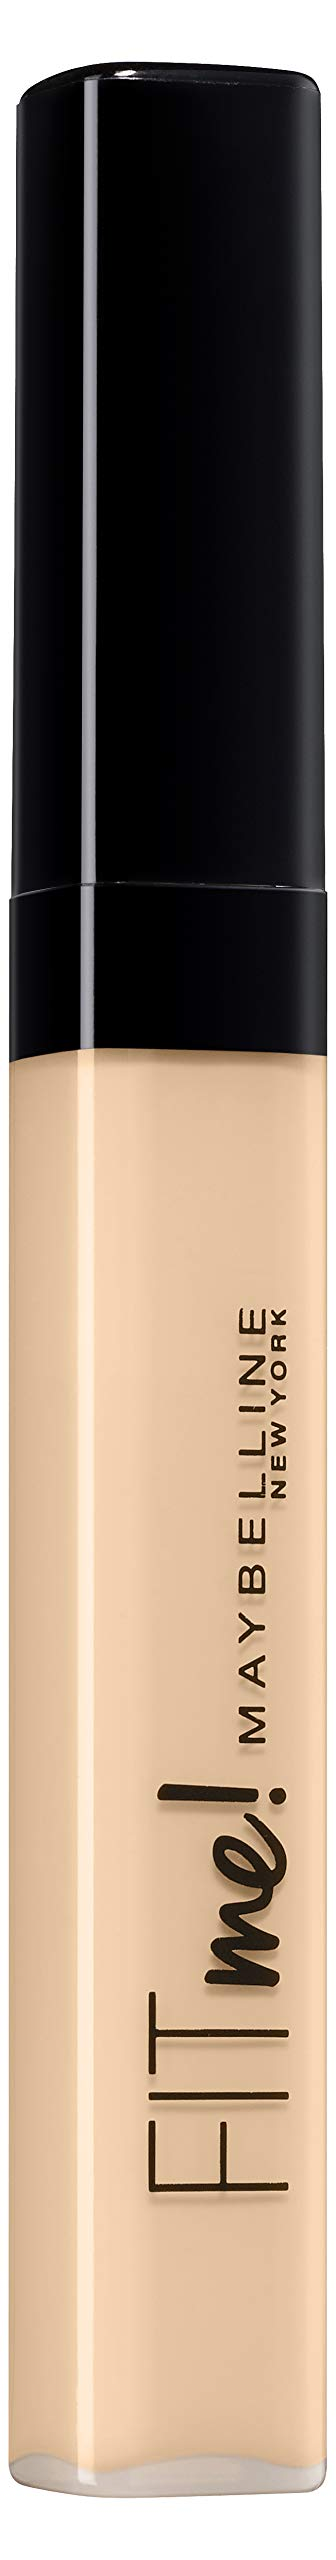 Maybelline Fit Me Corrector de Imperfecciones, Tono 15 Fair pieles claras 6,8ML product